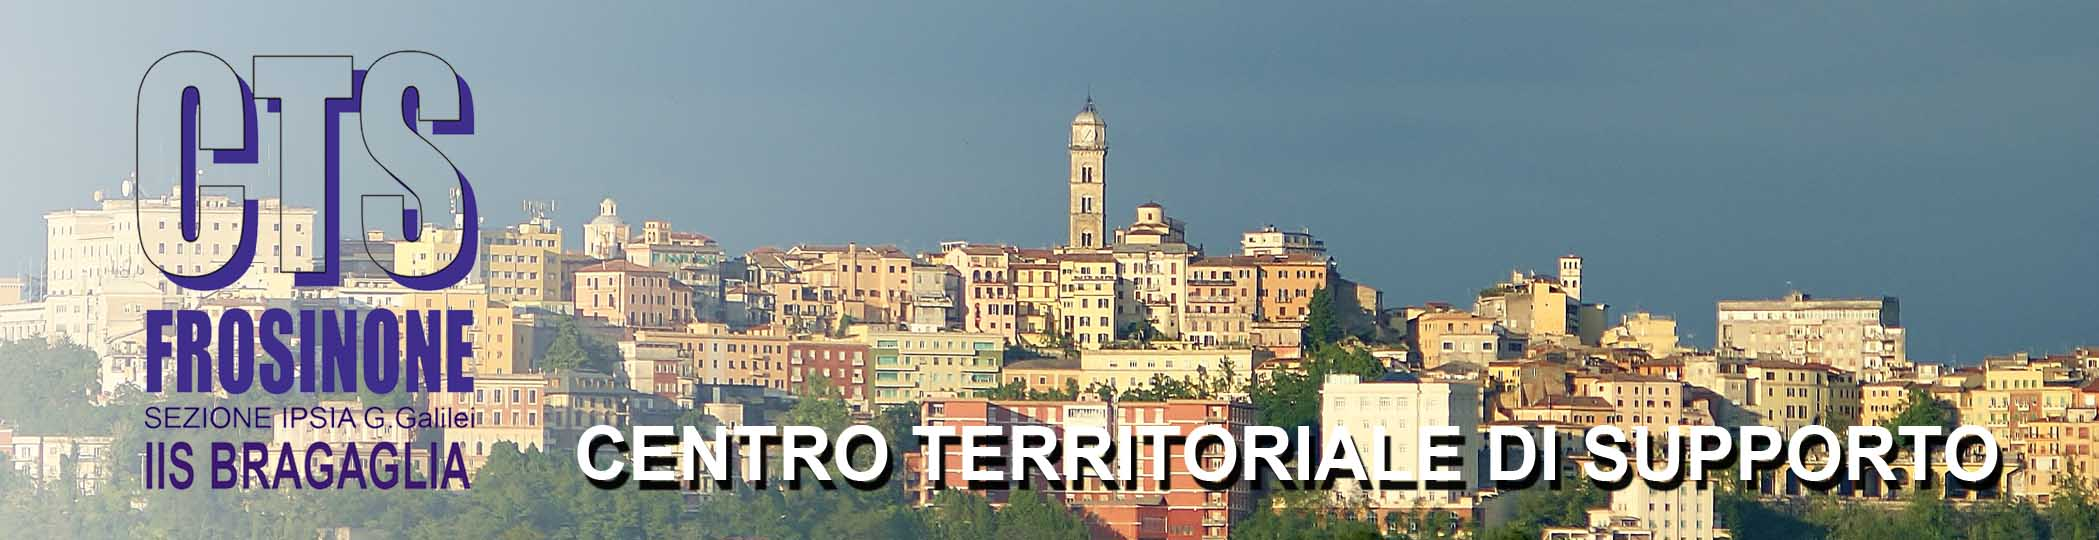 Centro Territoriale Supporto Frosinone